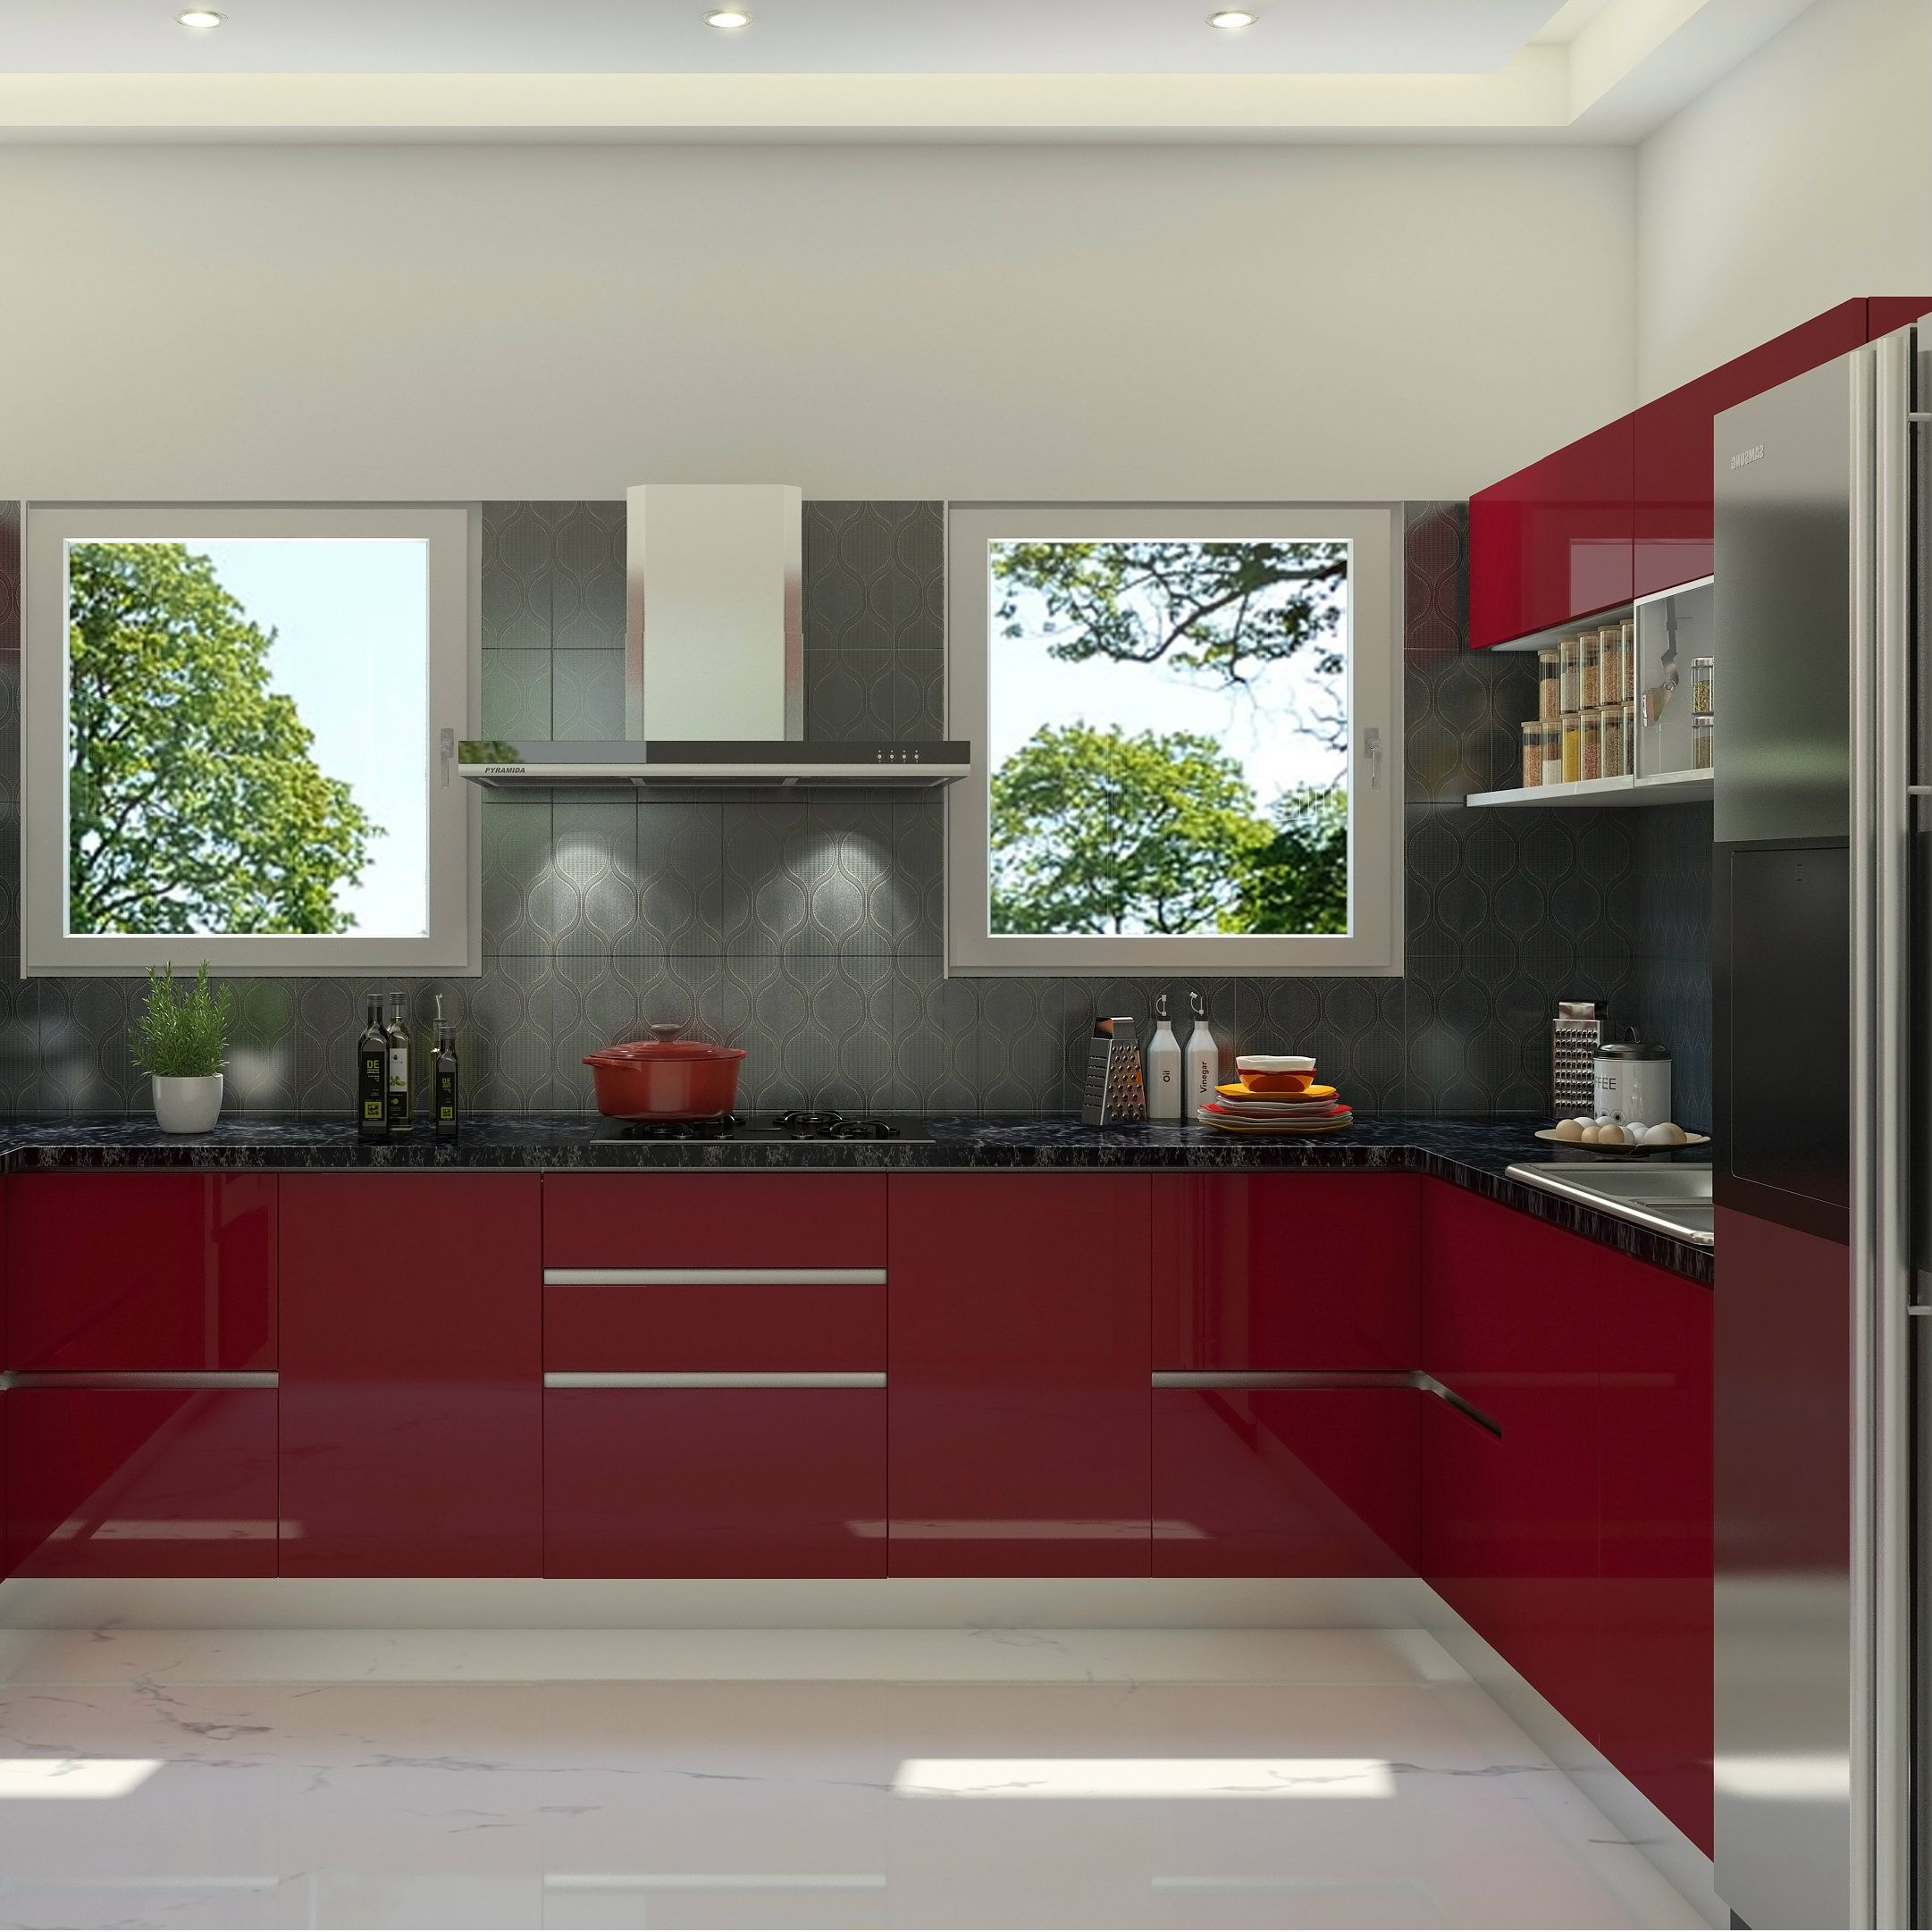 Best Glossy Kitchen Design Sleek Finish Red And Grey 400 x 300